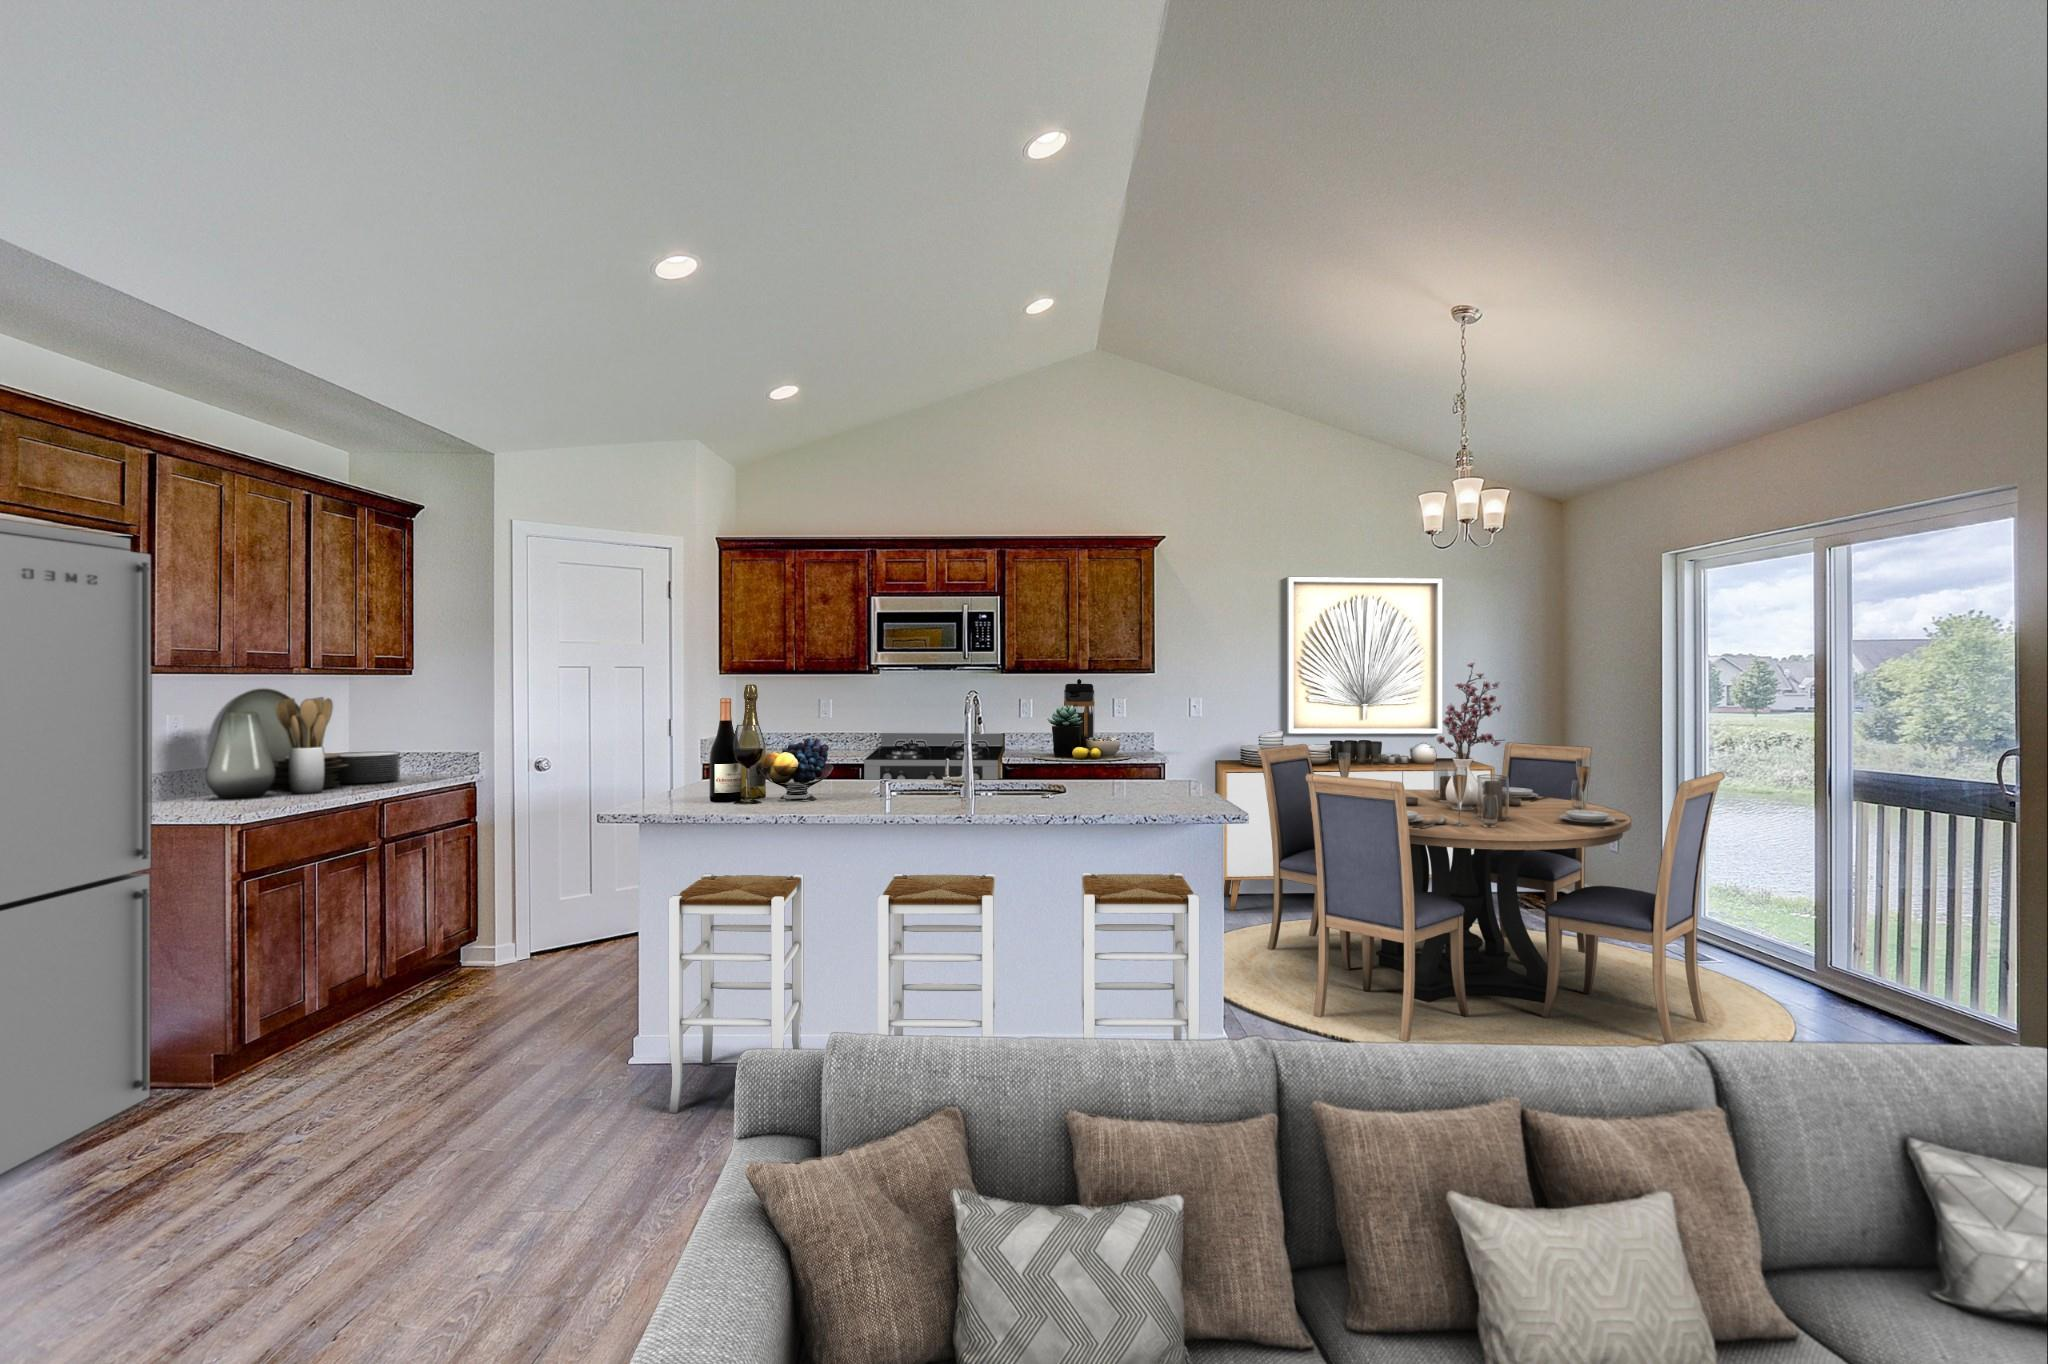 Kitchen featured in the Saybrook By Harbor Homes in Washington-Fond du Lac, WI